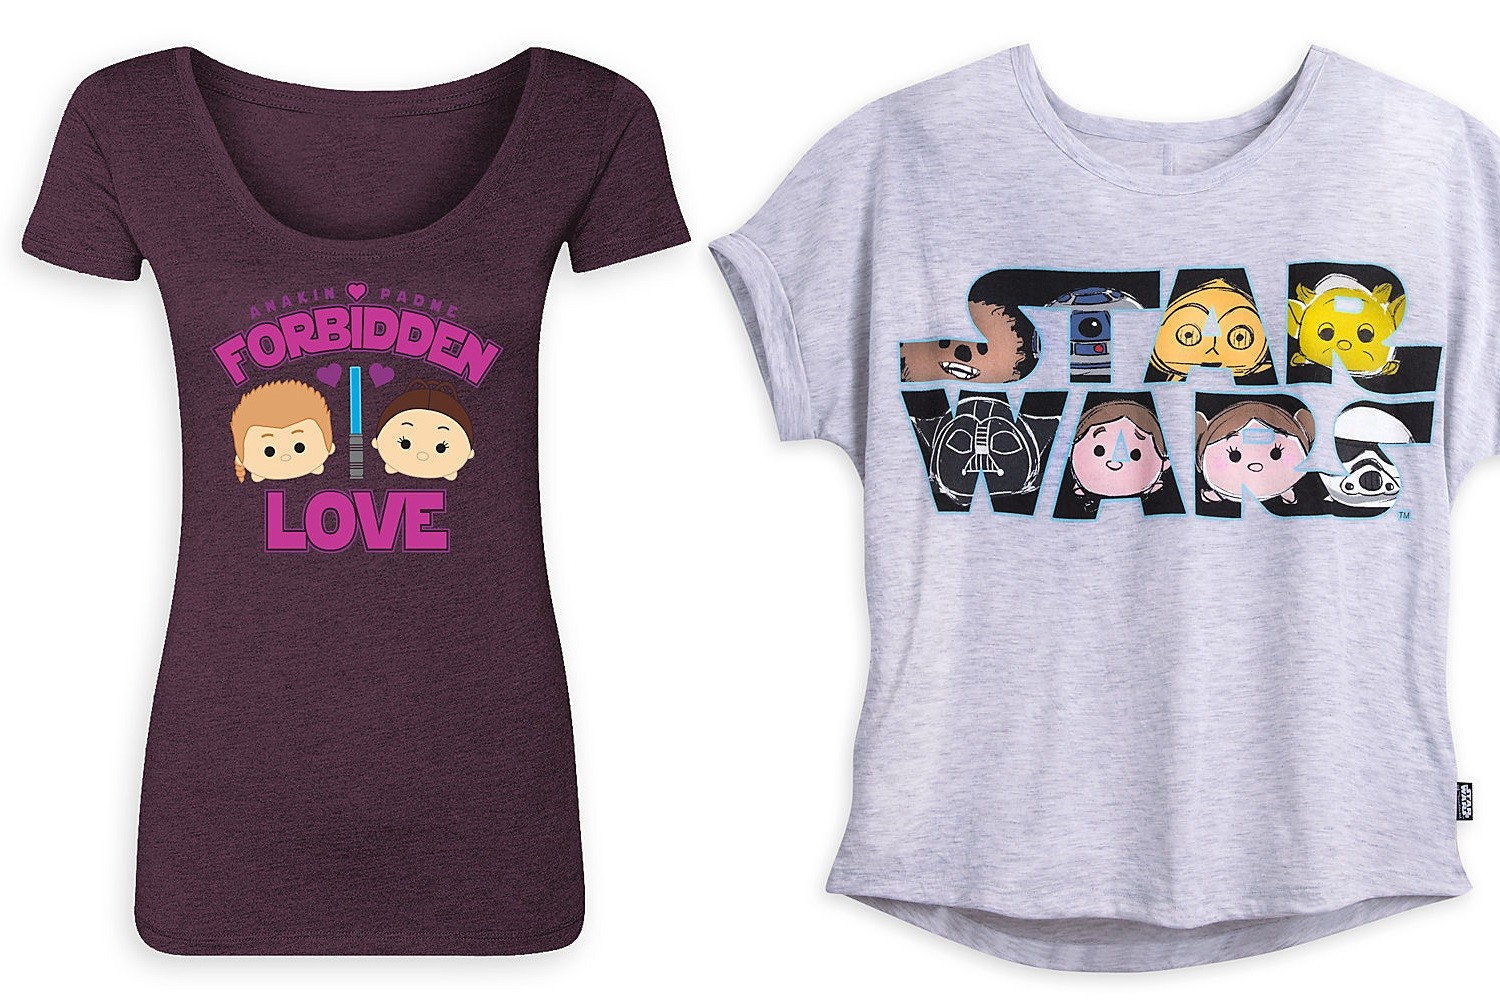 New women's Star Wars Tsum Tsum apparel